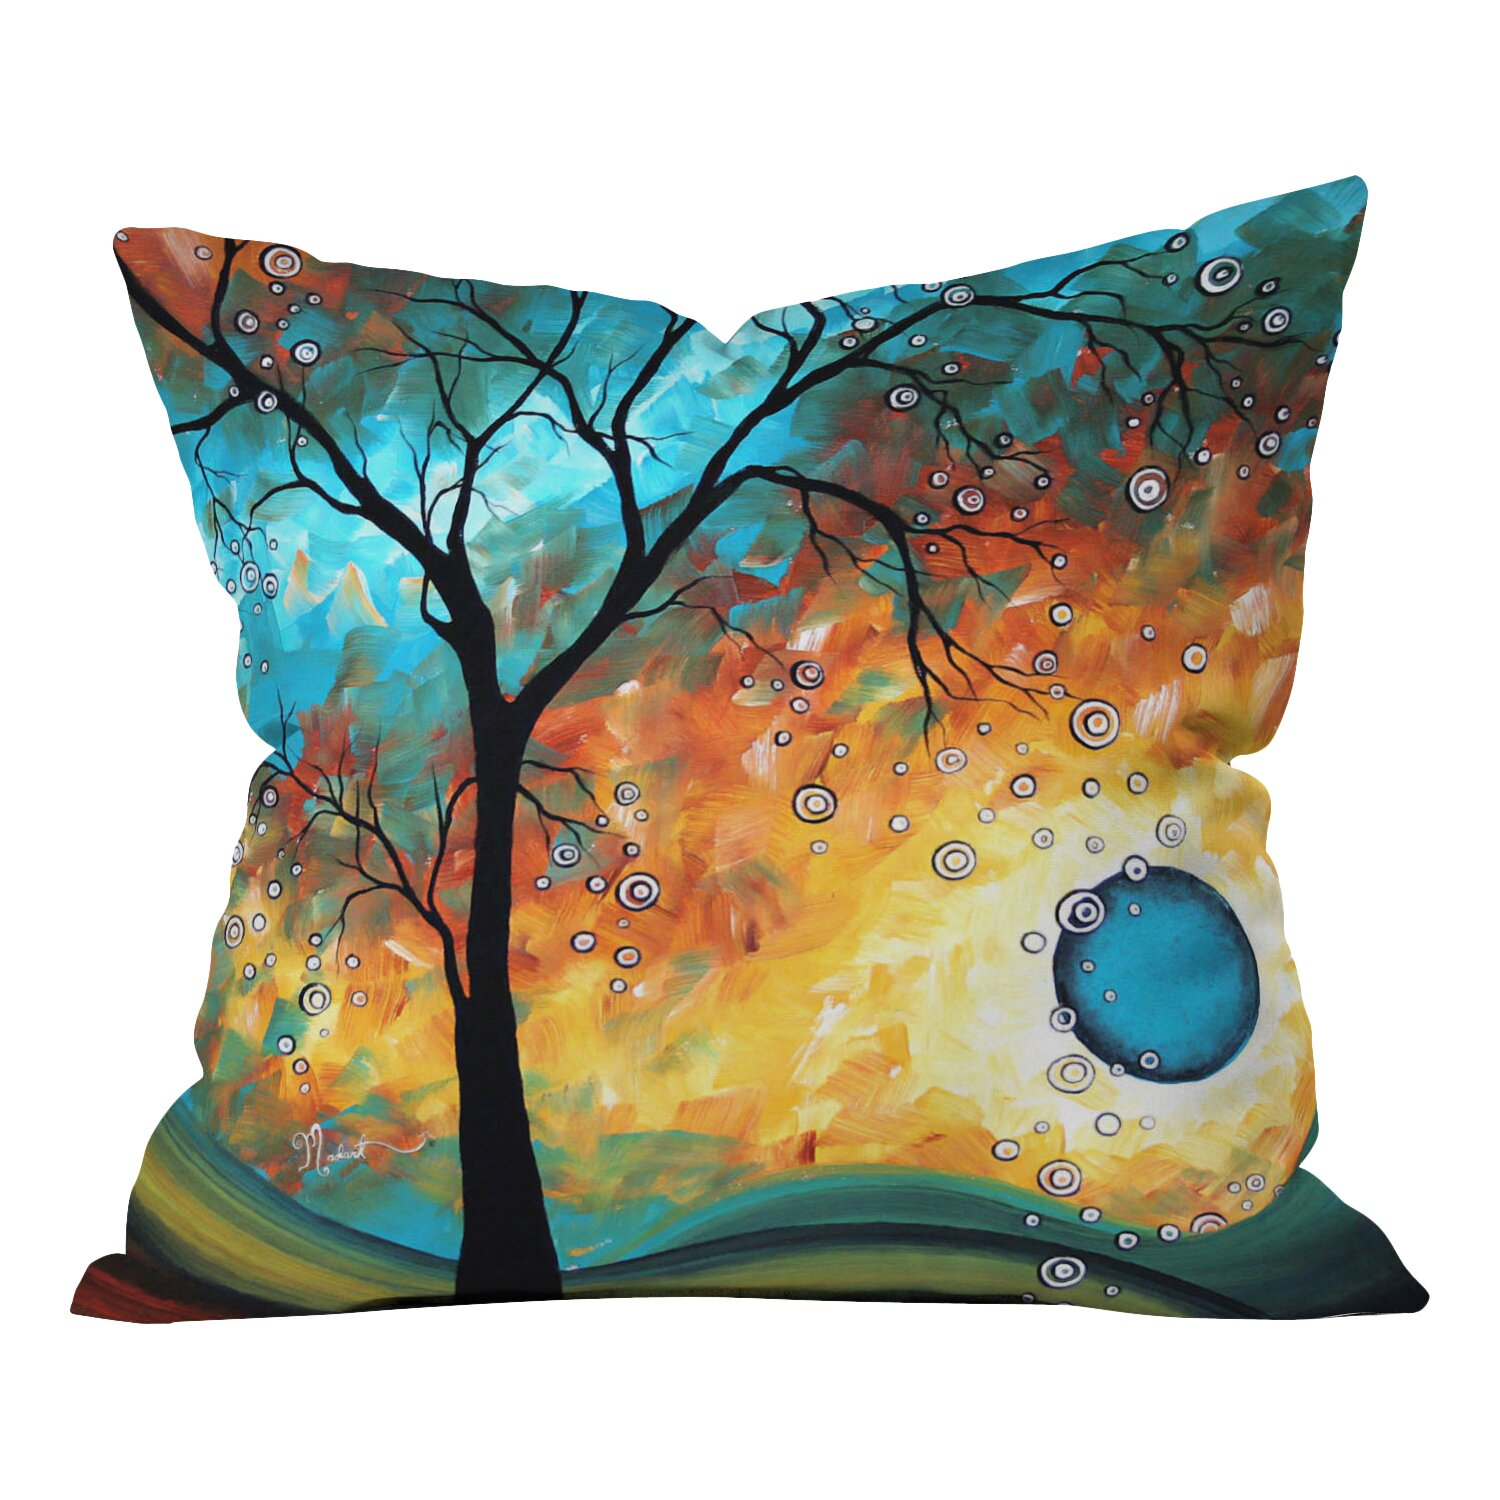 Decorative Pillow Designs : DENY Designs Madart Inc. Throw Pillow & Reviews Wayfair